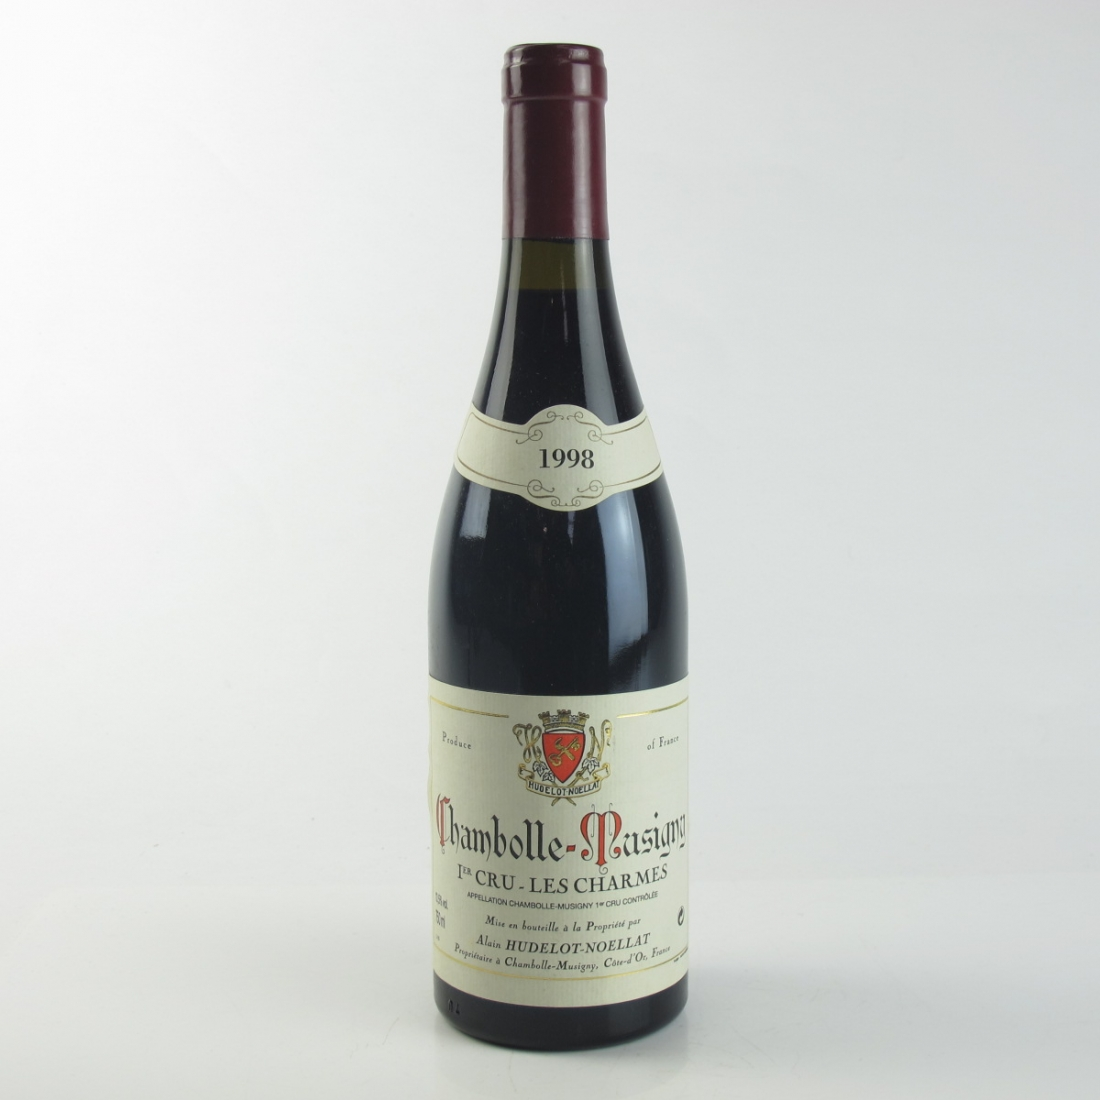 """A.H.Noellat """"Les Charmes"""" 1998 Chambolle-Musigny 1er-Cru"""